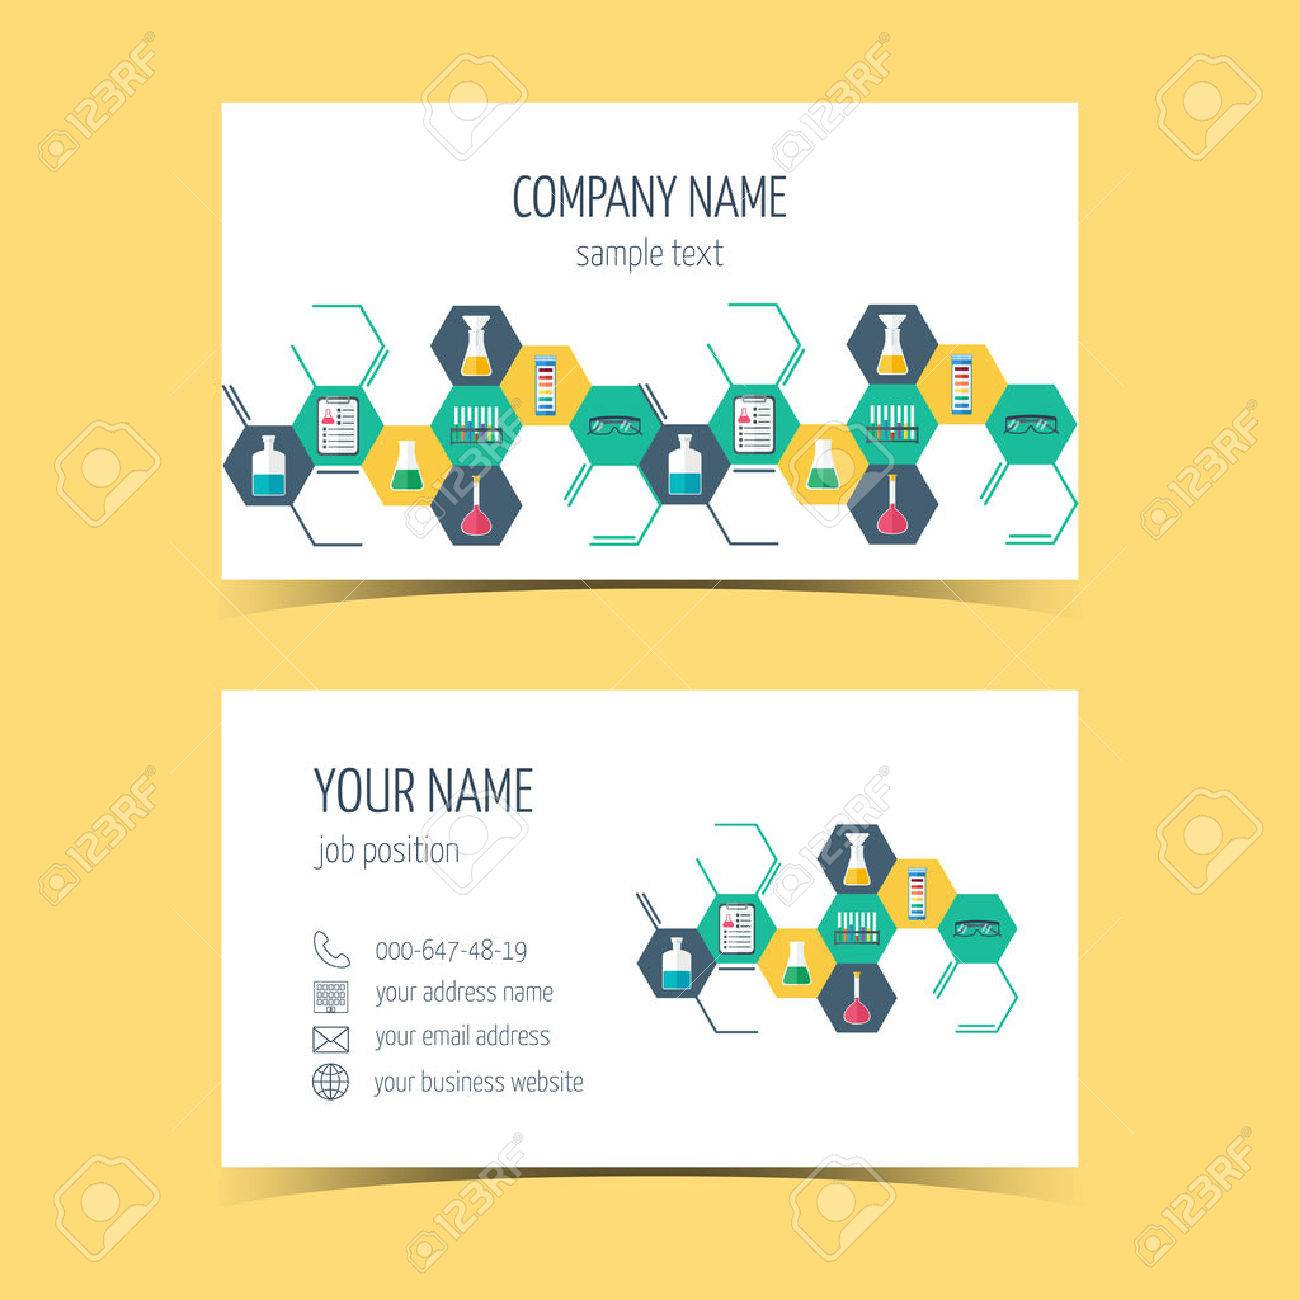 Business cards for chemical and scientific companies promotional business cards for chemical and scientific companies promotional products vector illustration stock vector colourmoves